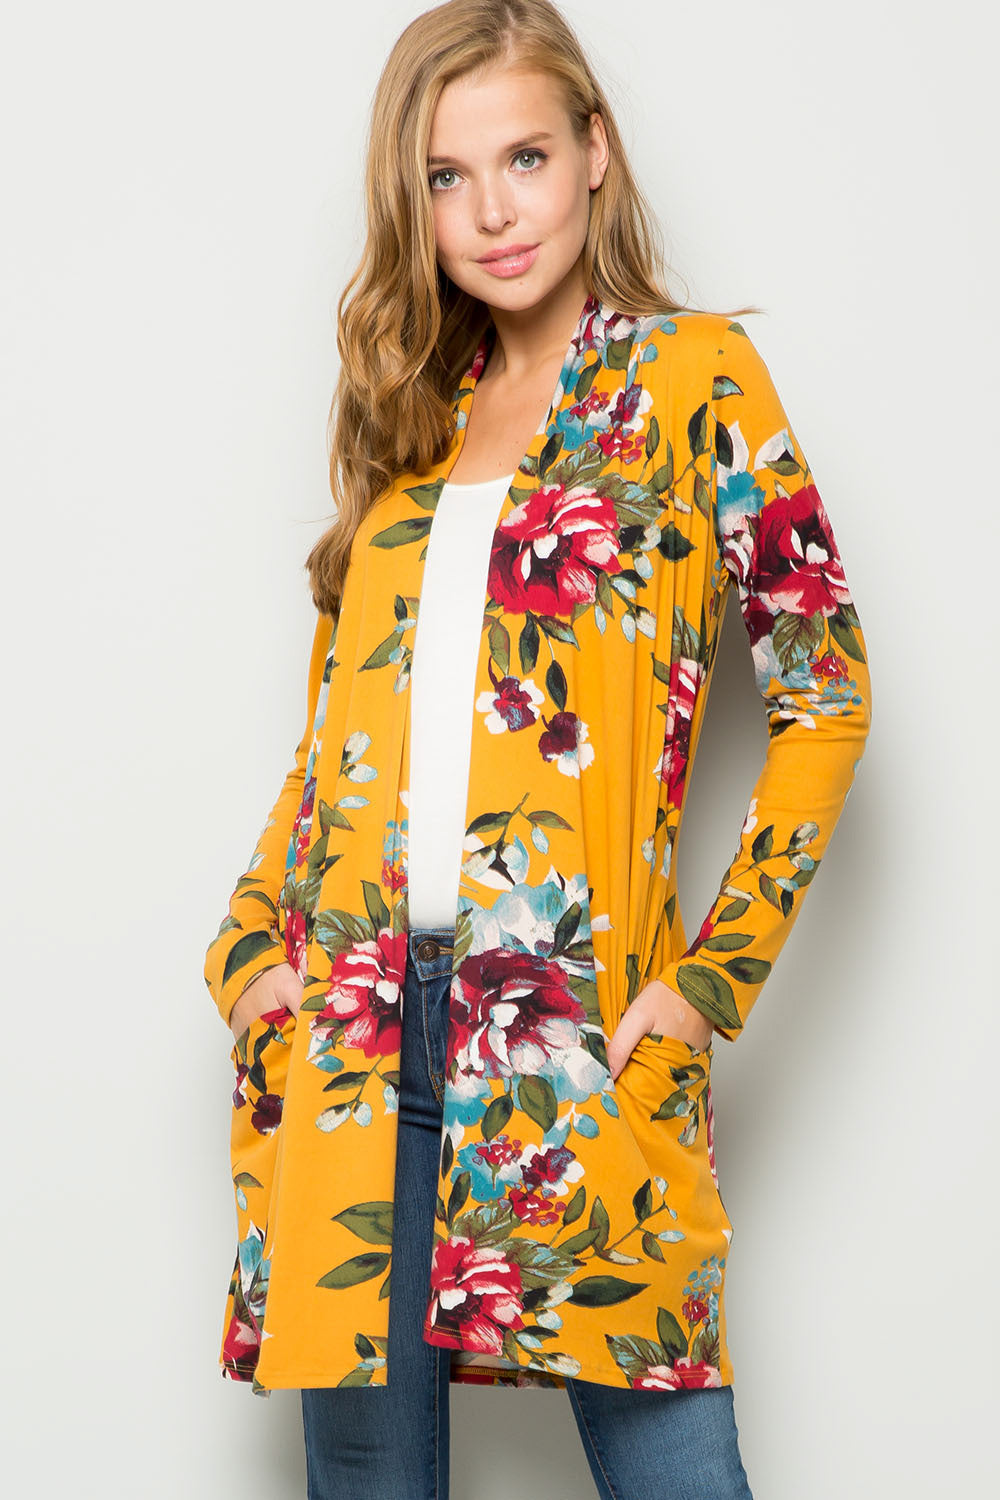 Floral Open-front Cardigan - Mustard